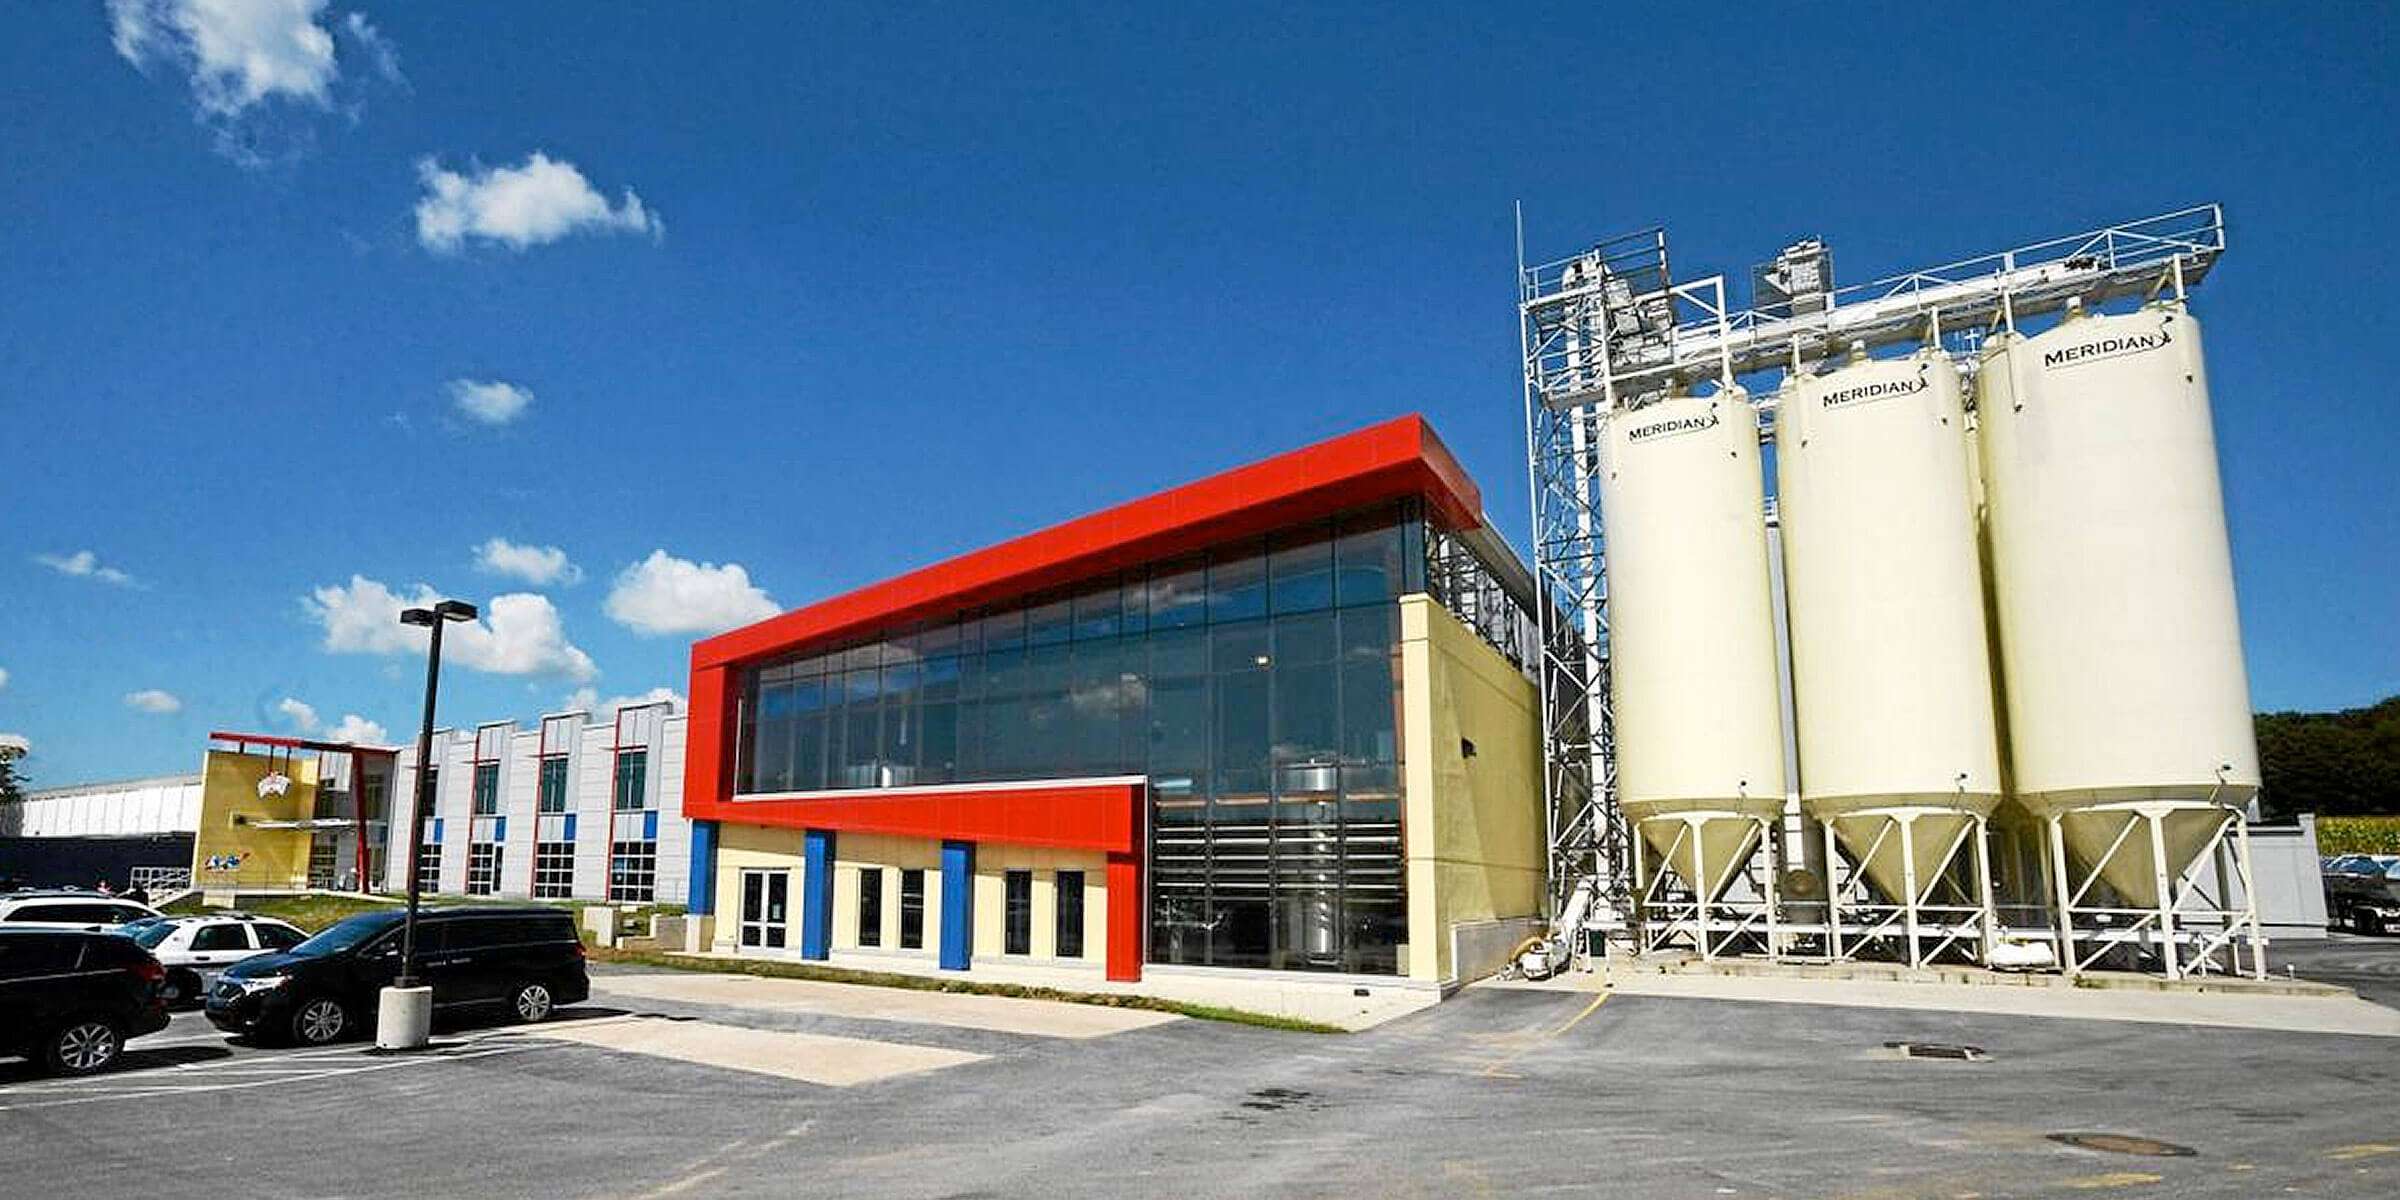 Outside the Victory Brewing Company production facility in Parkesburg, Pennsylvania